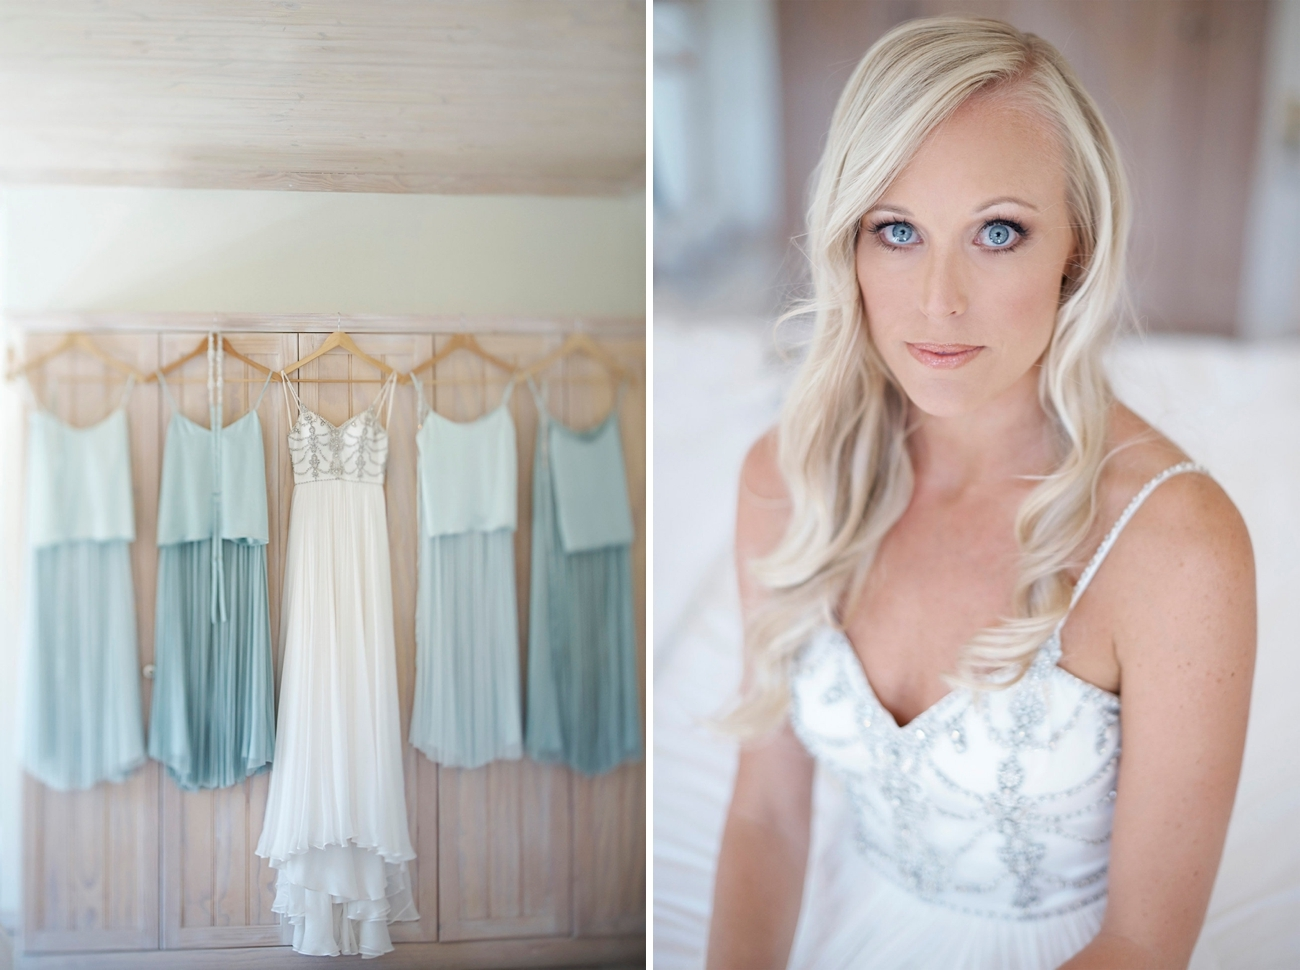 Mint Green Bridesmaid Dresses | Image: Knit Together Photography